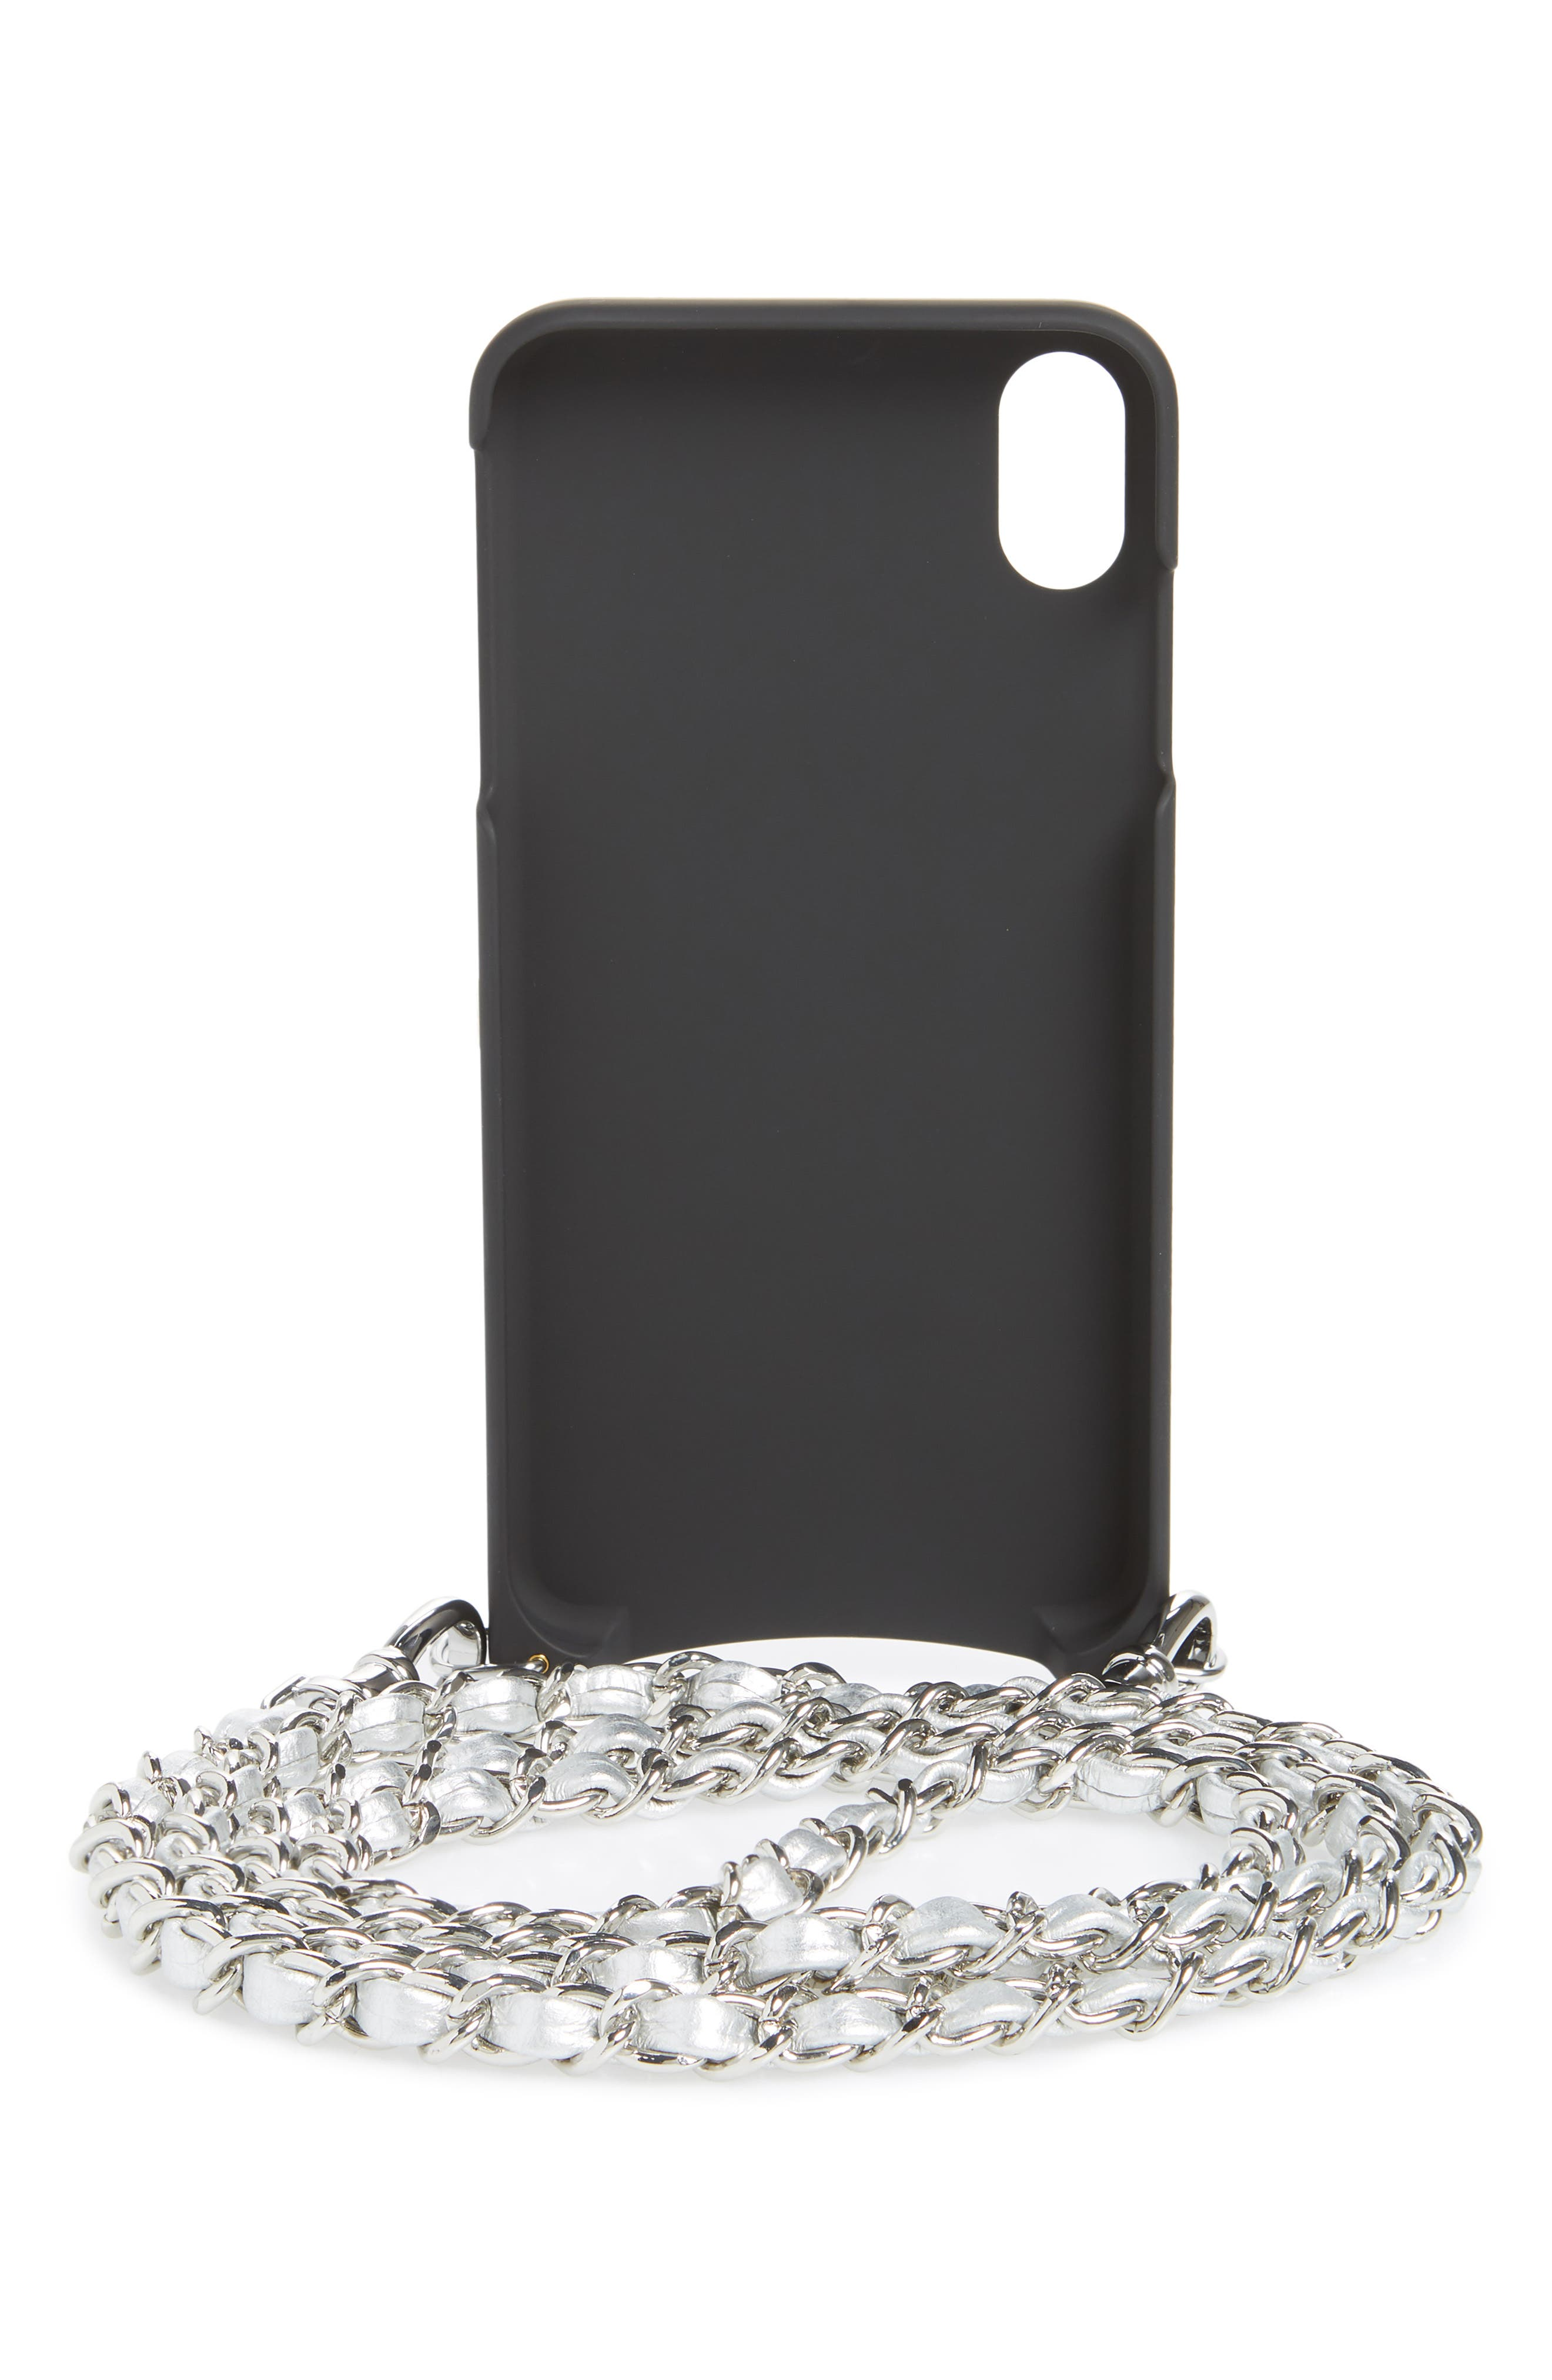 BANDOLIER,                             Sarah Leather iPhone 8/8 Plus/X/Xs/Xs Max & XR Crossbody Case,                             Alternate thumbnail 3, color,                             SILVER/ SILVER